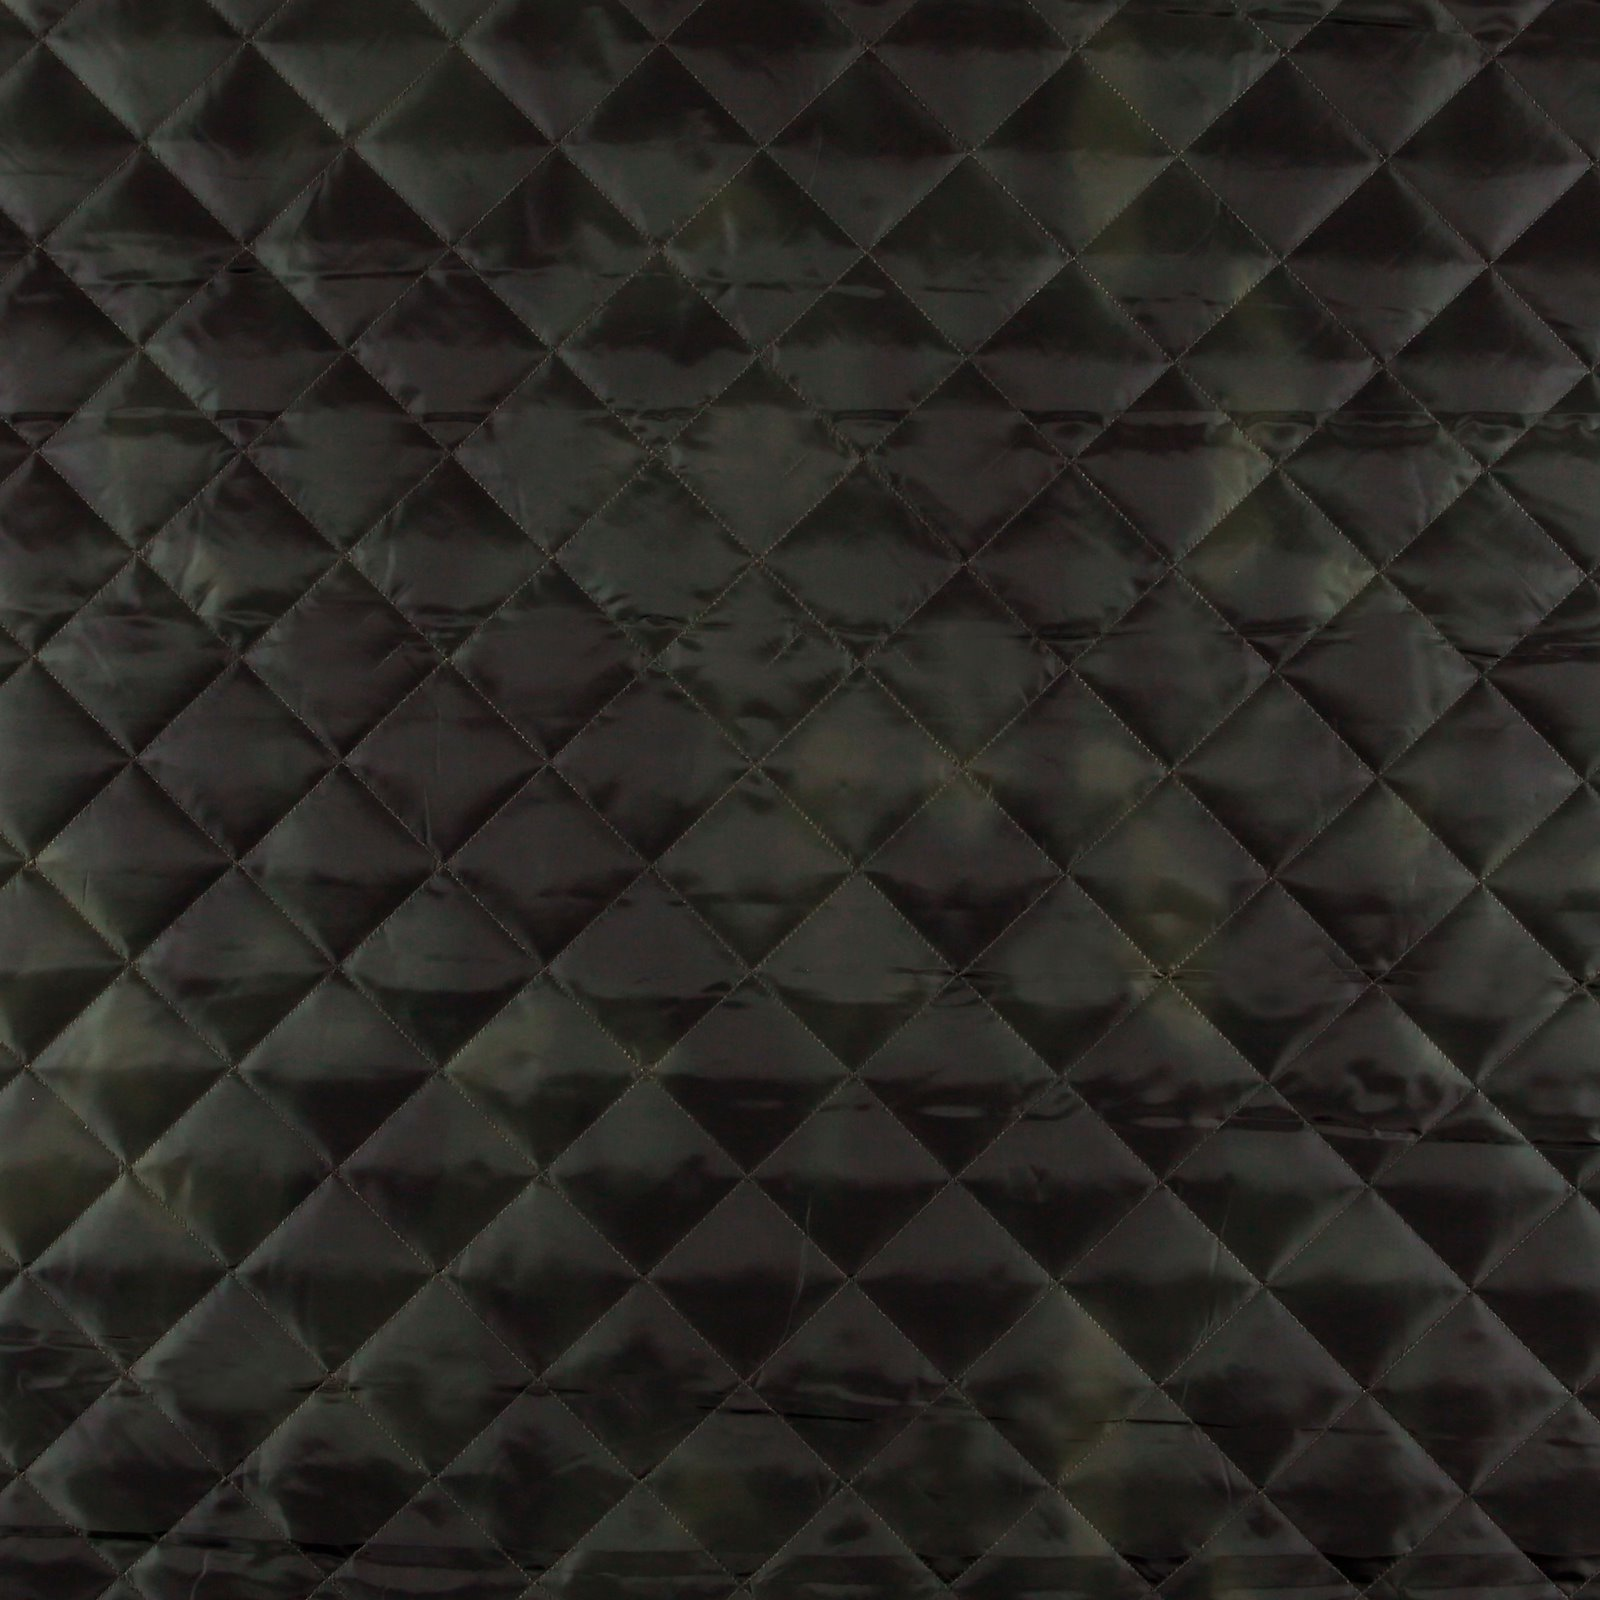 Woven quilt with army green batik print 920245_pack_sp